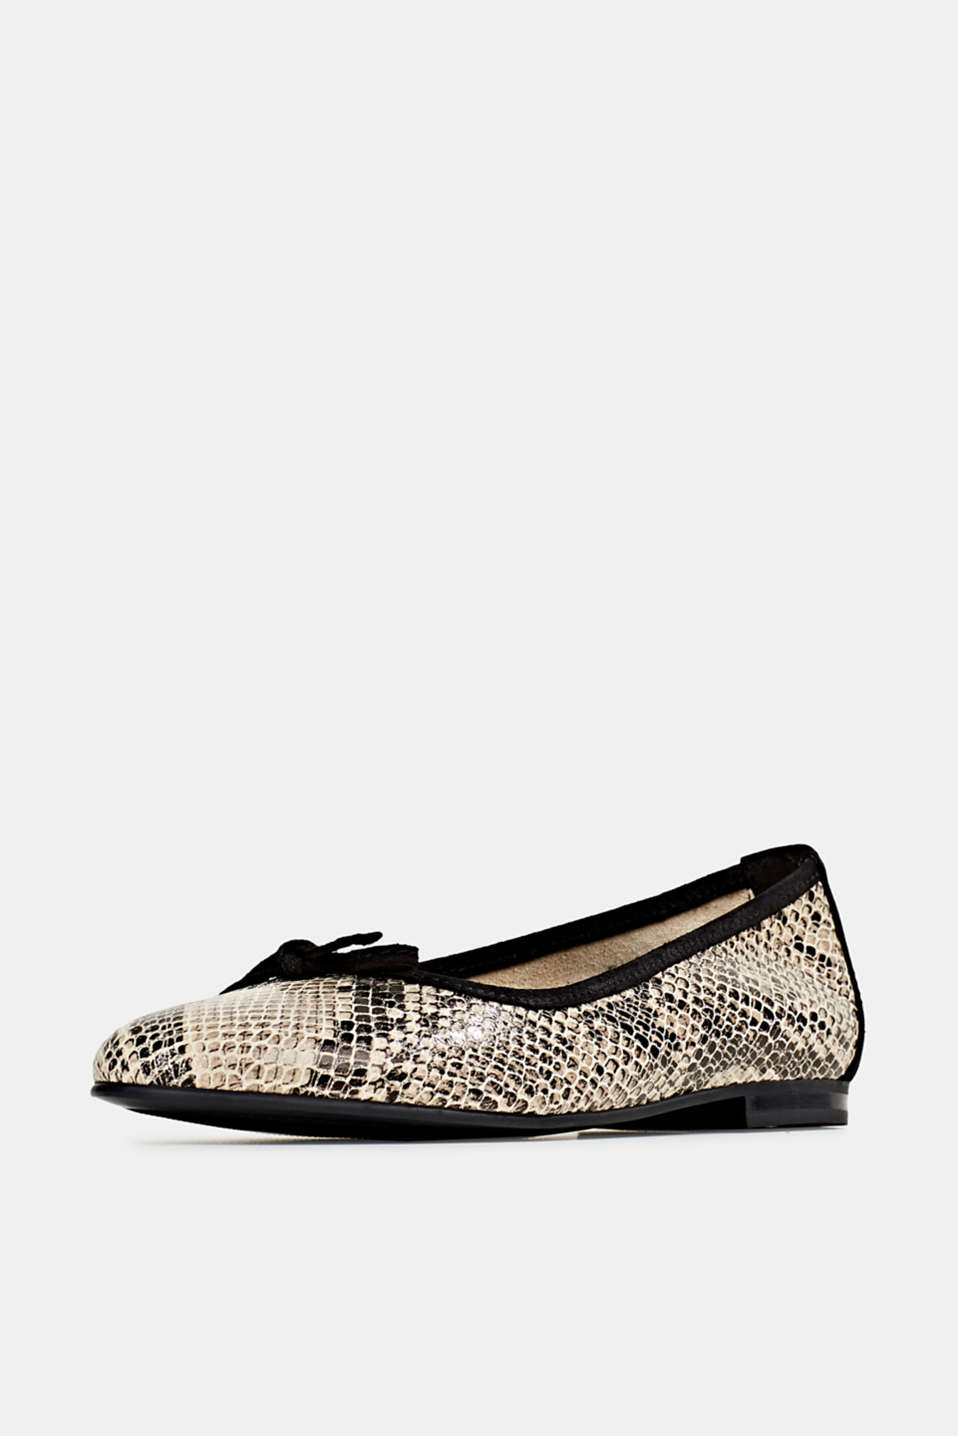 Snake print ballerinas made of leather, BEIGE, detail image number 2